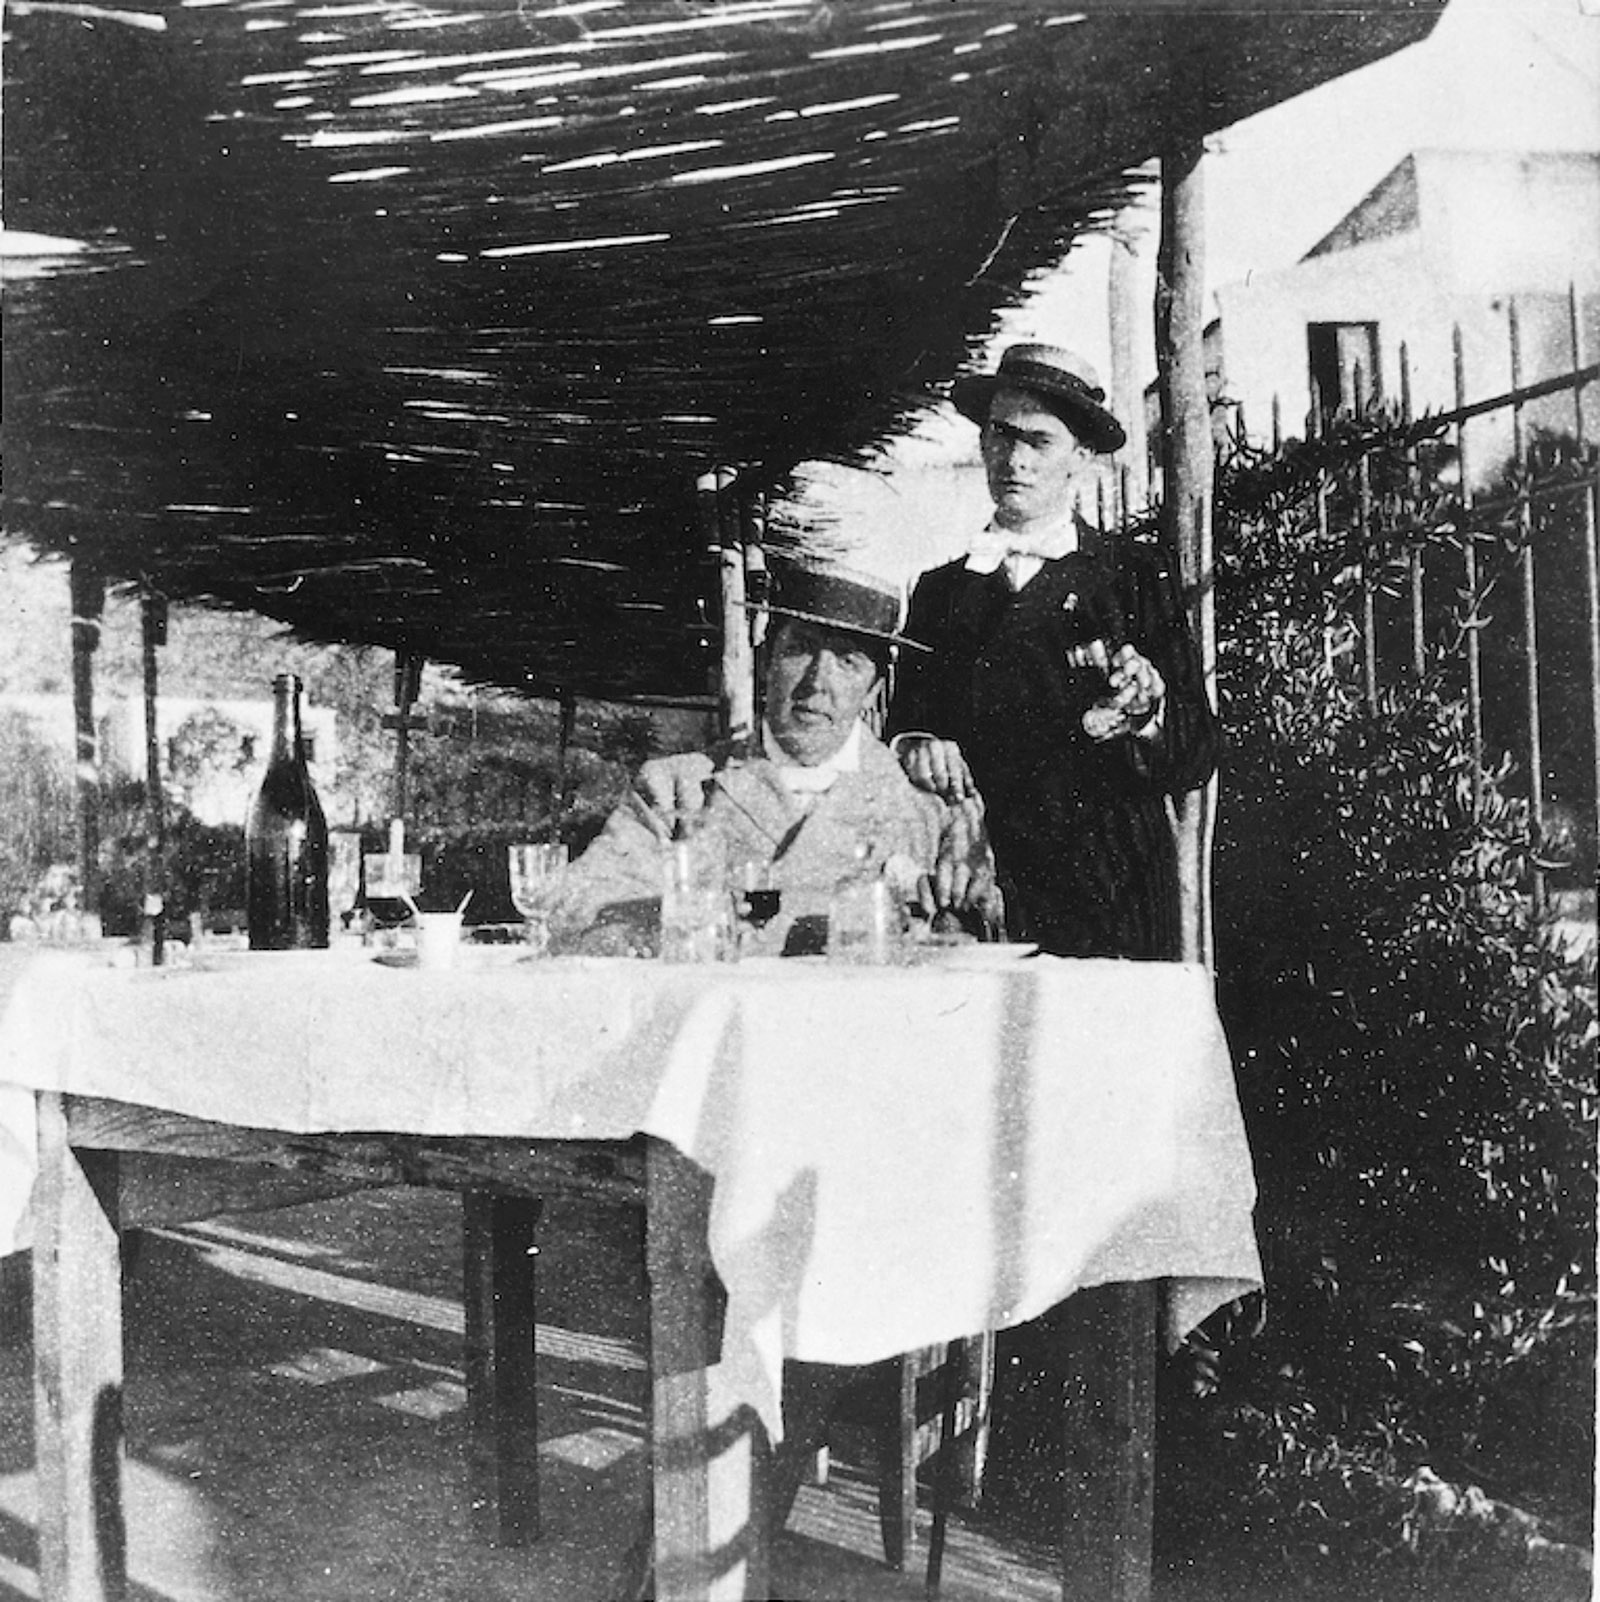 Oscar Wilde having lunch with Lord Alfred Douglas near Dieppe in 1898, after his release from Reading Gaol